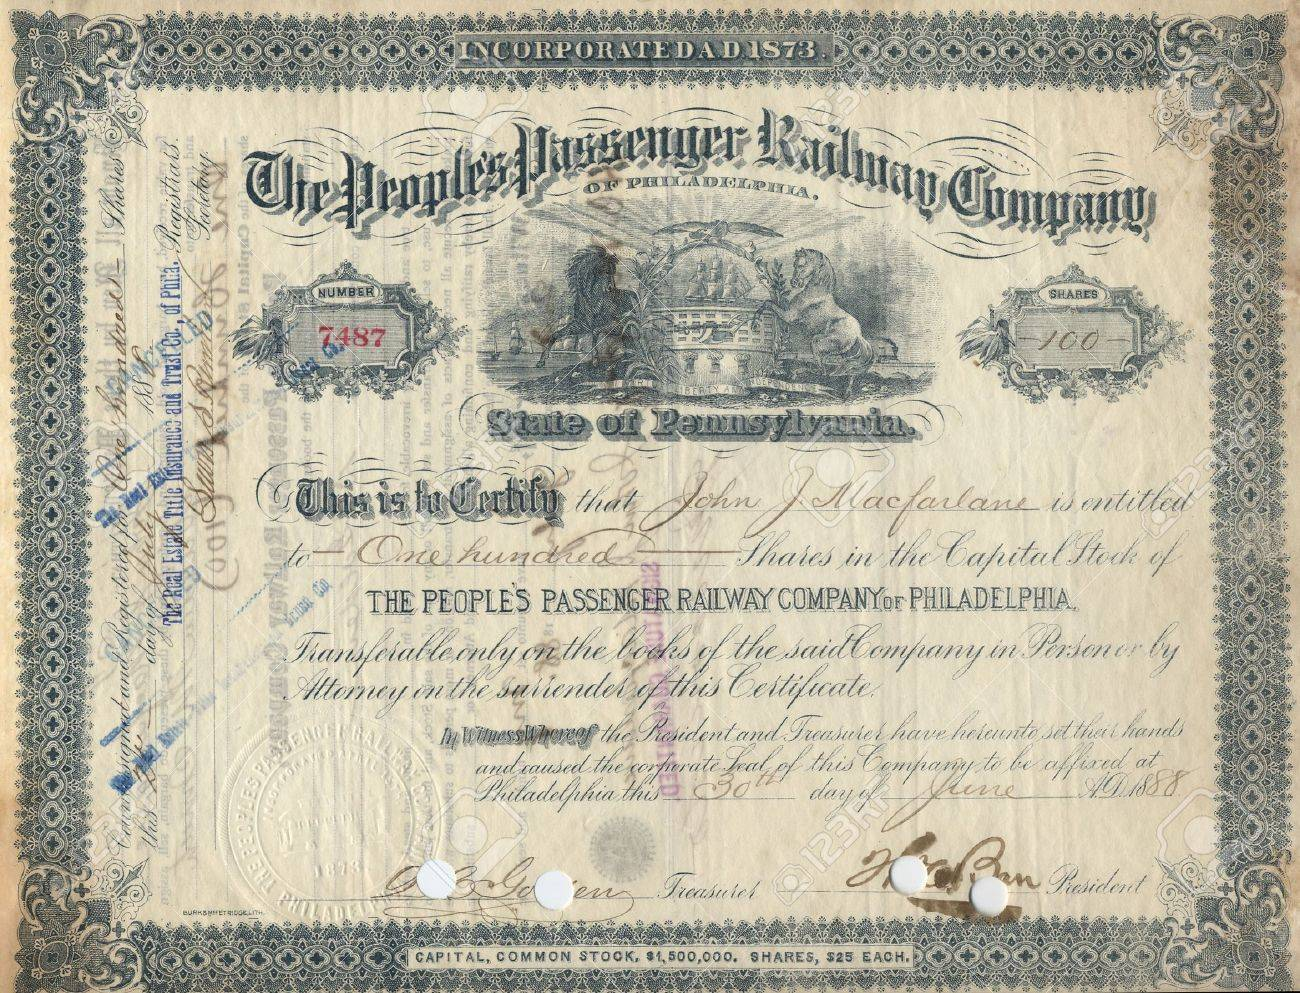 Photograph Of A 19th Century Stock Certificatenot Under Copyright